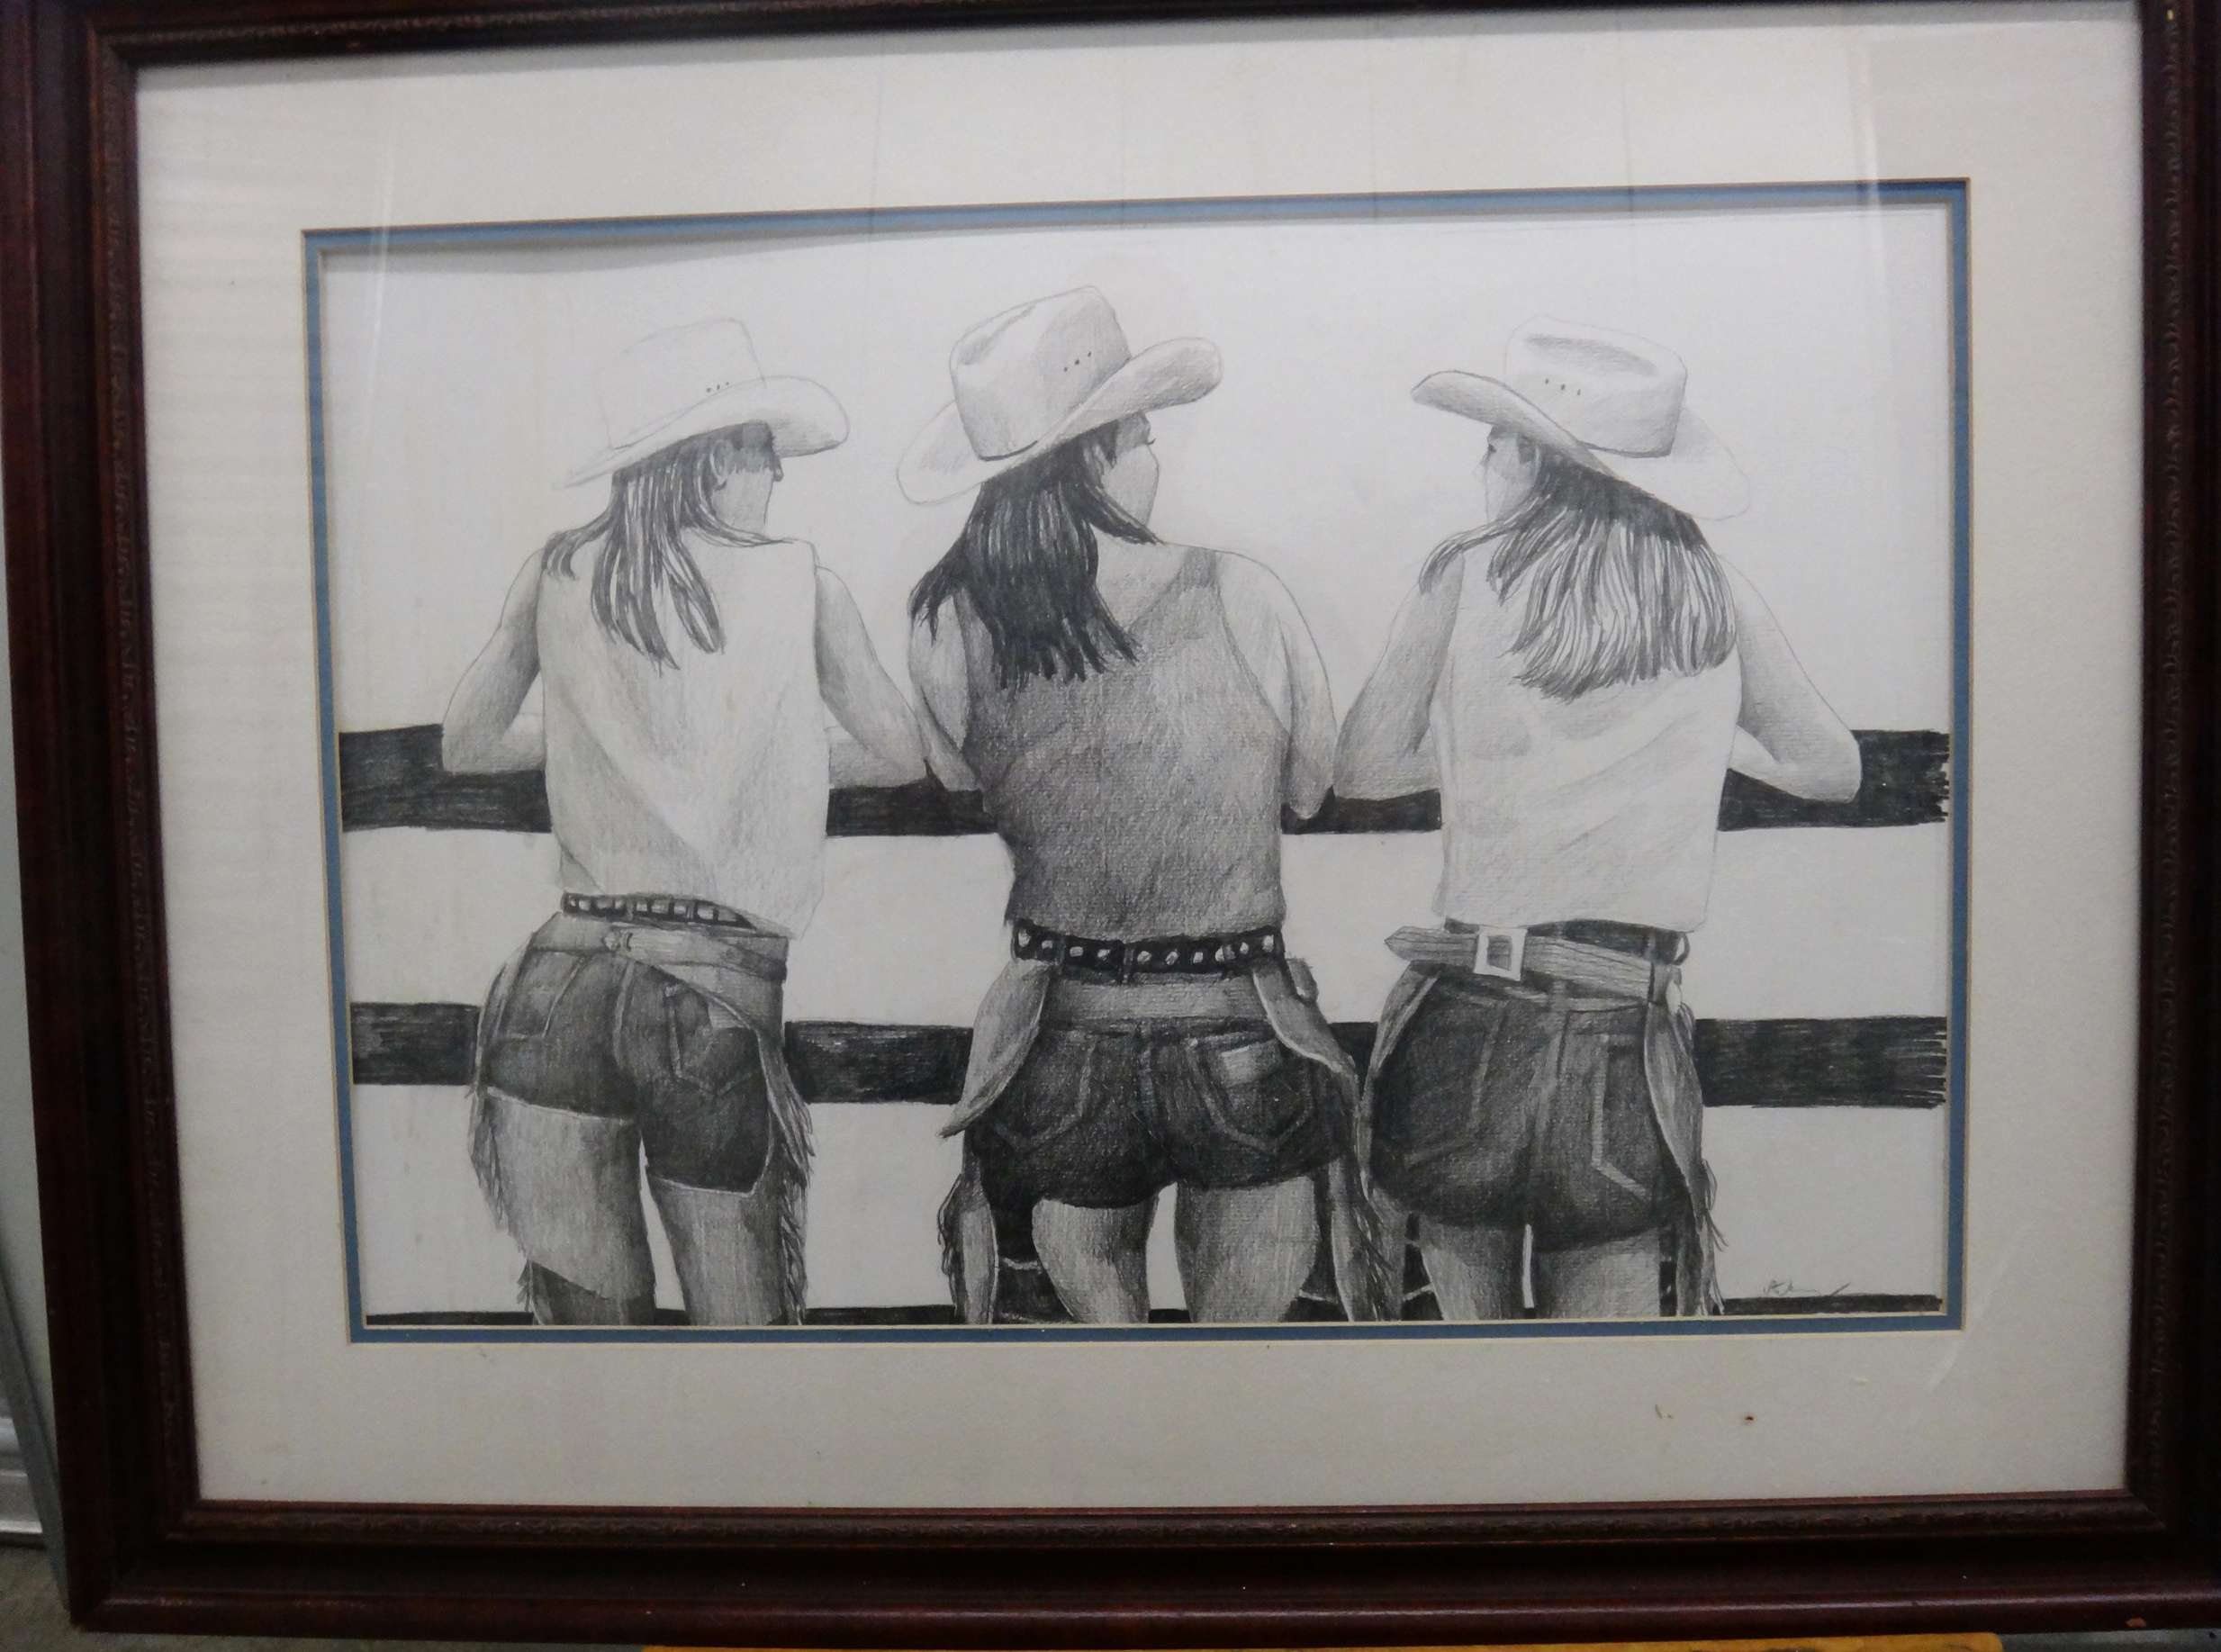 "Title: Cowgirls  Medium: Graphite on Paper  Dimensions: 16"" x 24""  Framed:Yes  Price: Contact for Inquiry"